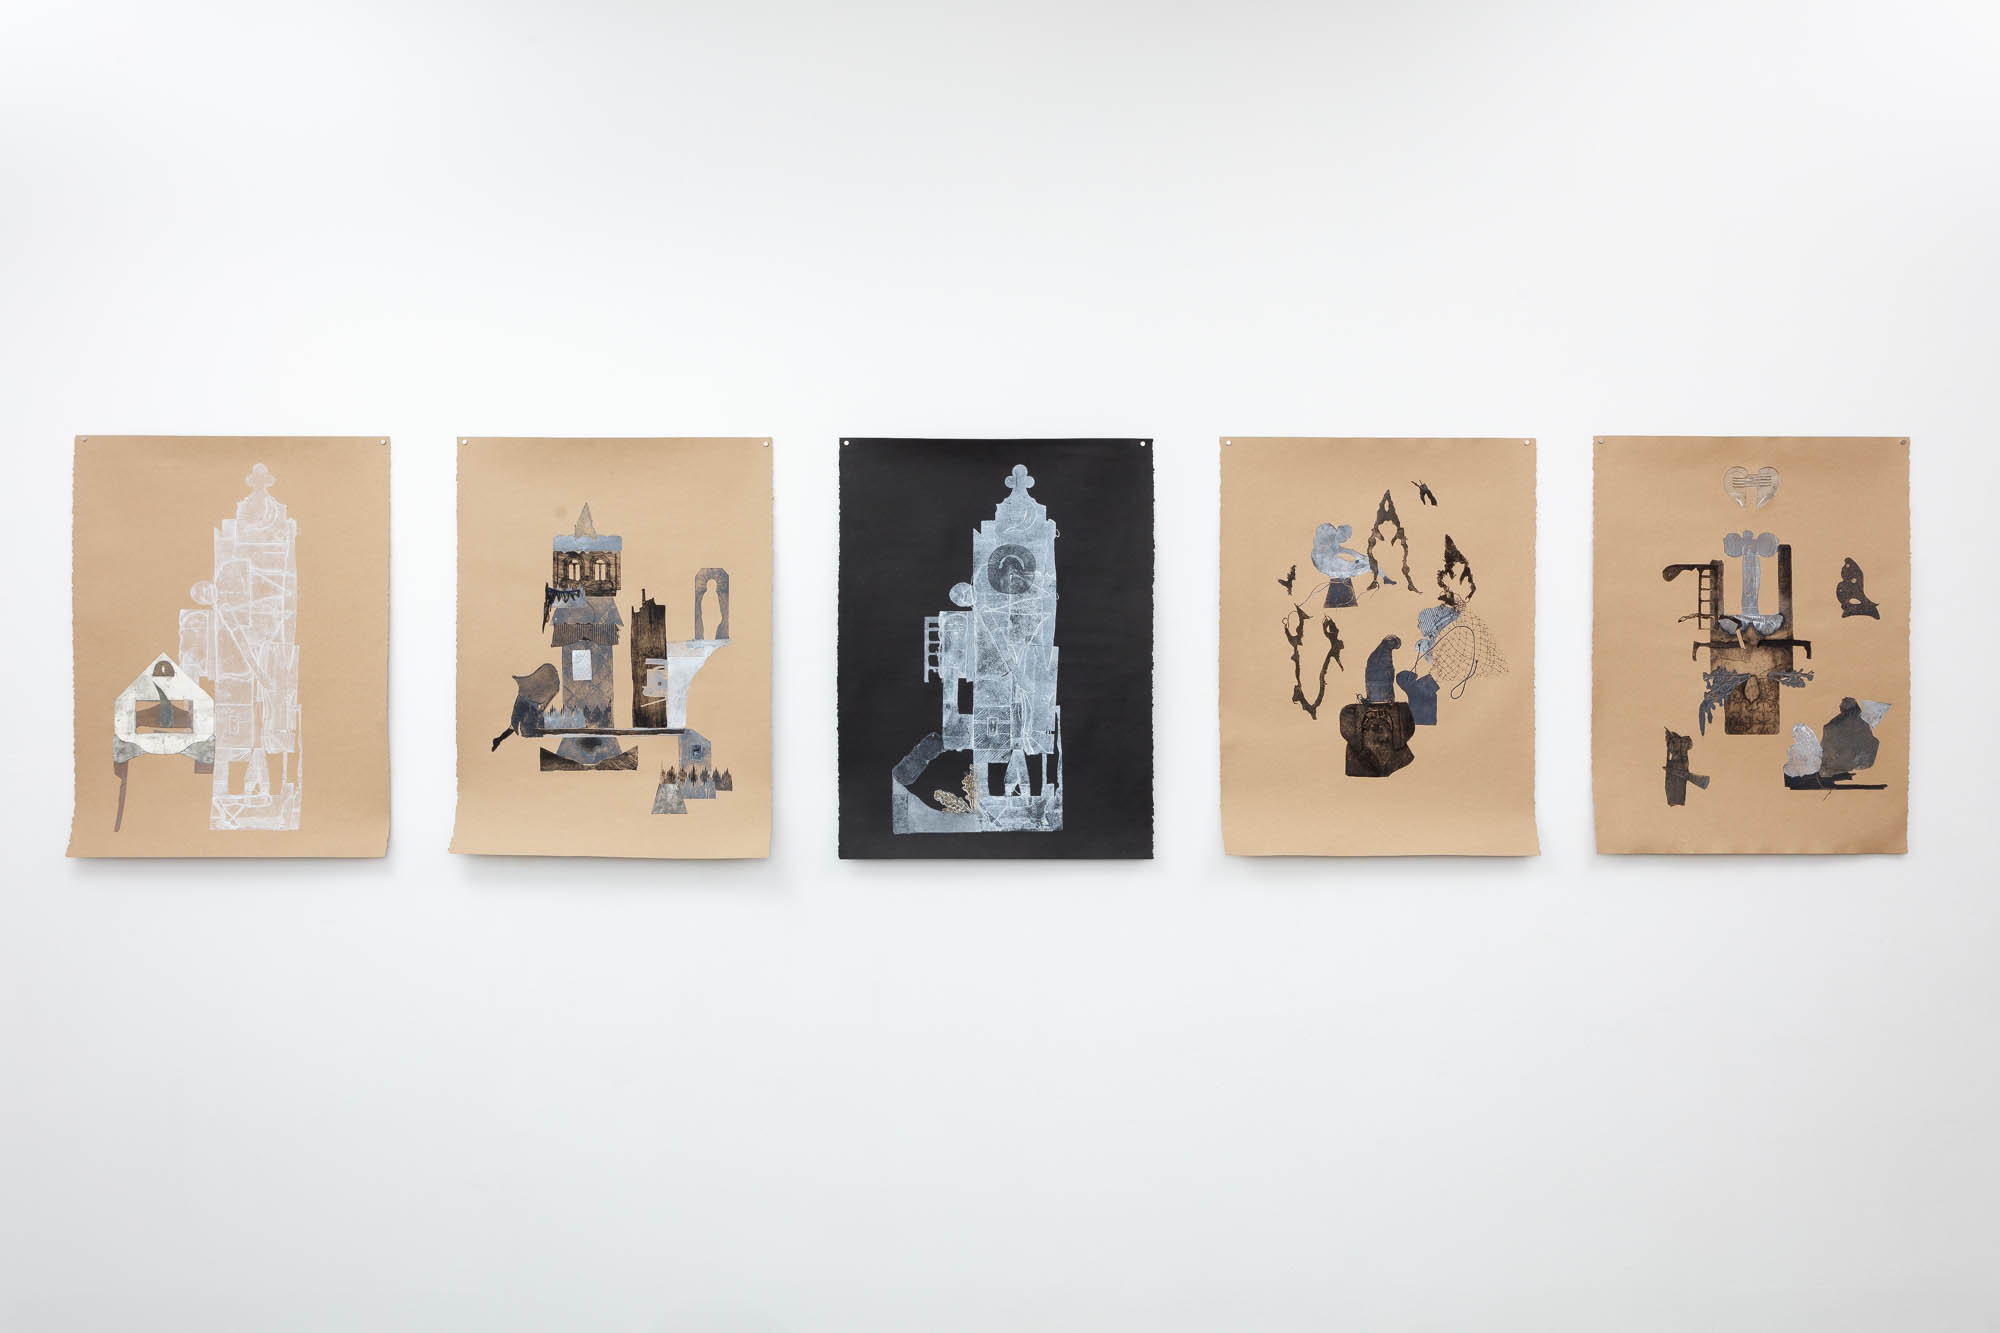 Fanny Allié's Attached House, 2017, Veiled, 2018, Black Tower, 2018,  Dancing Shadows, 2018, and Heart-Angel, 2018 (Left-to-Right)